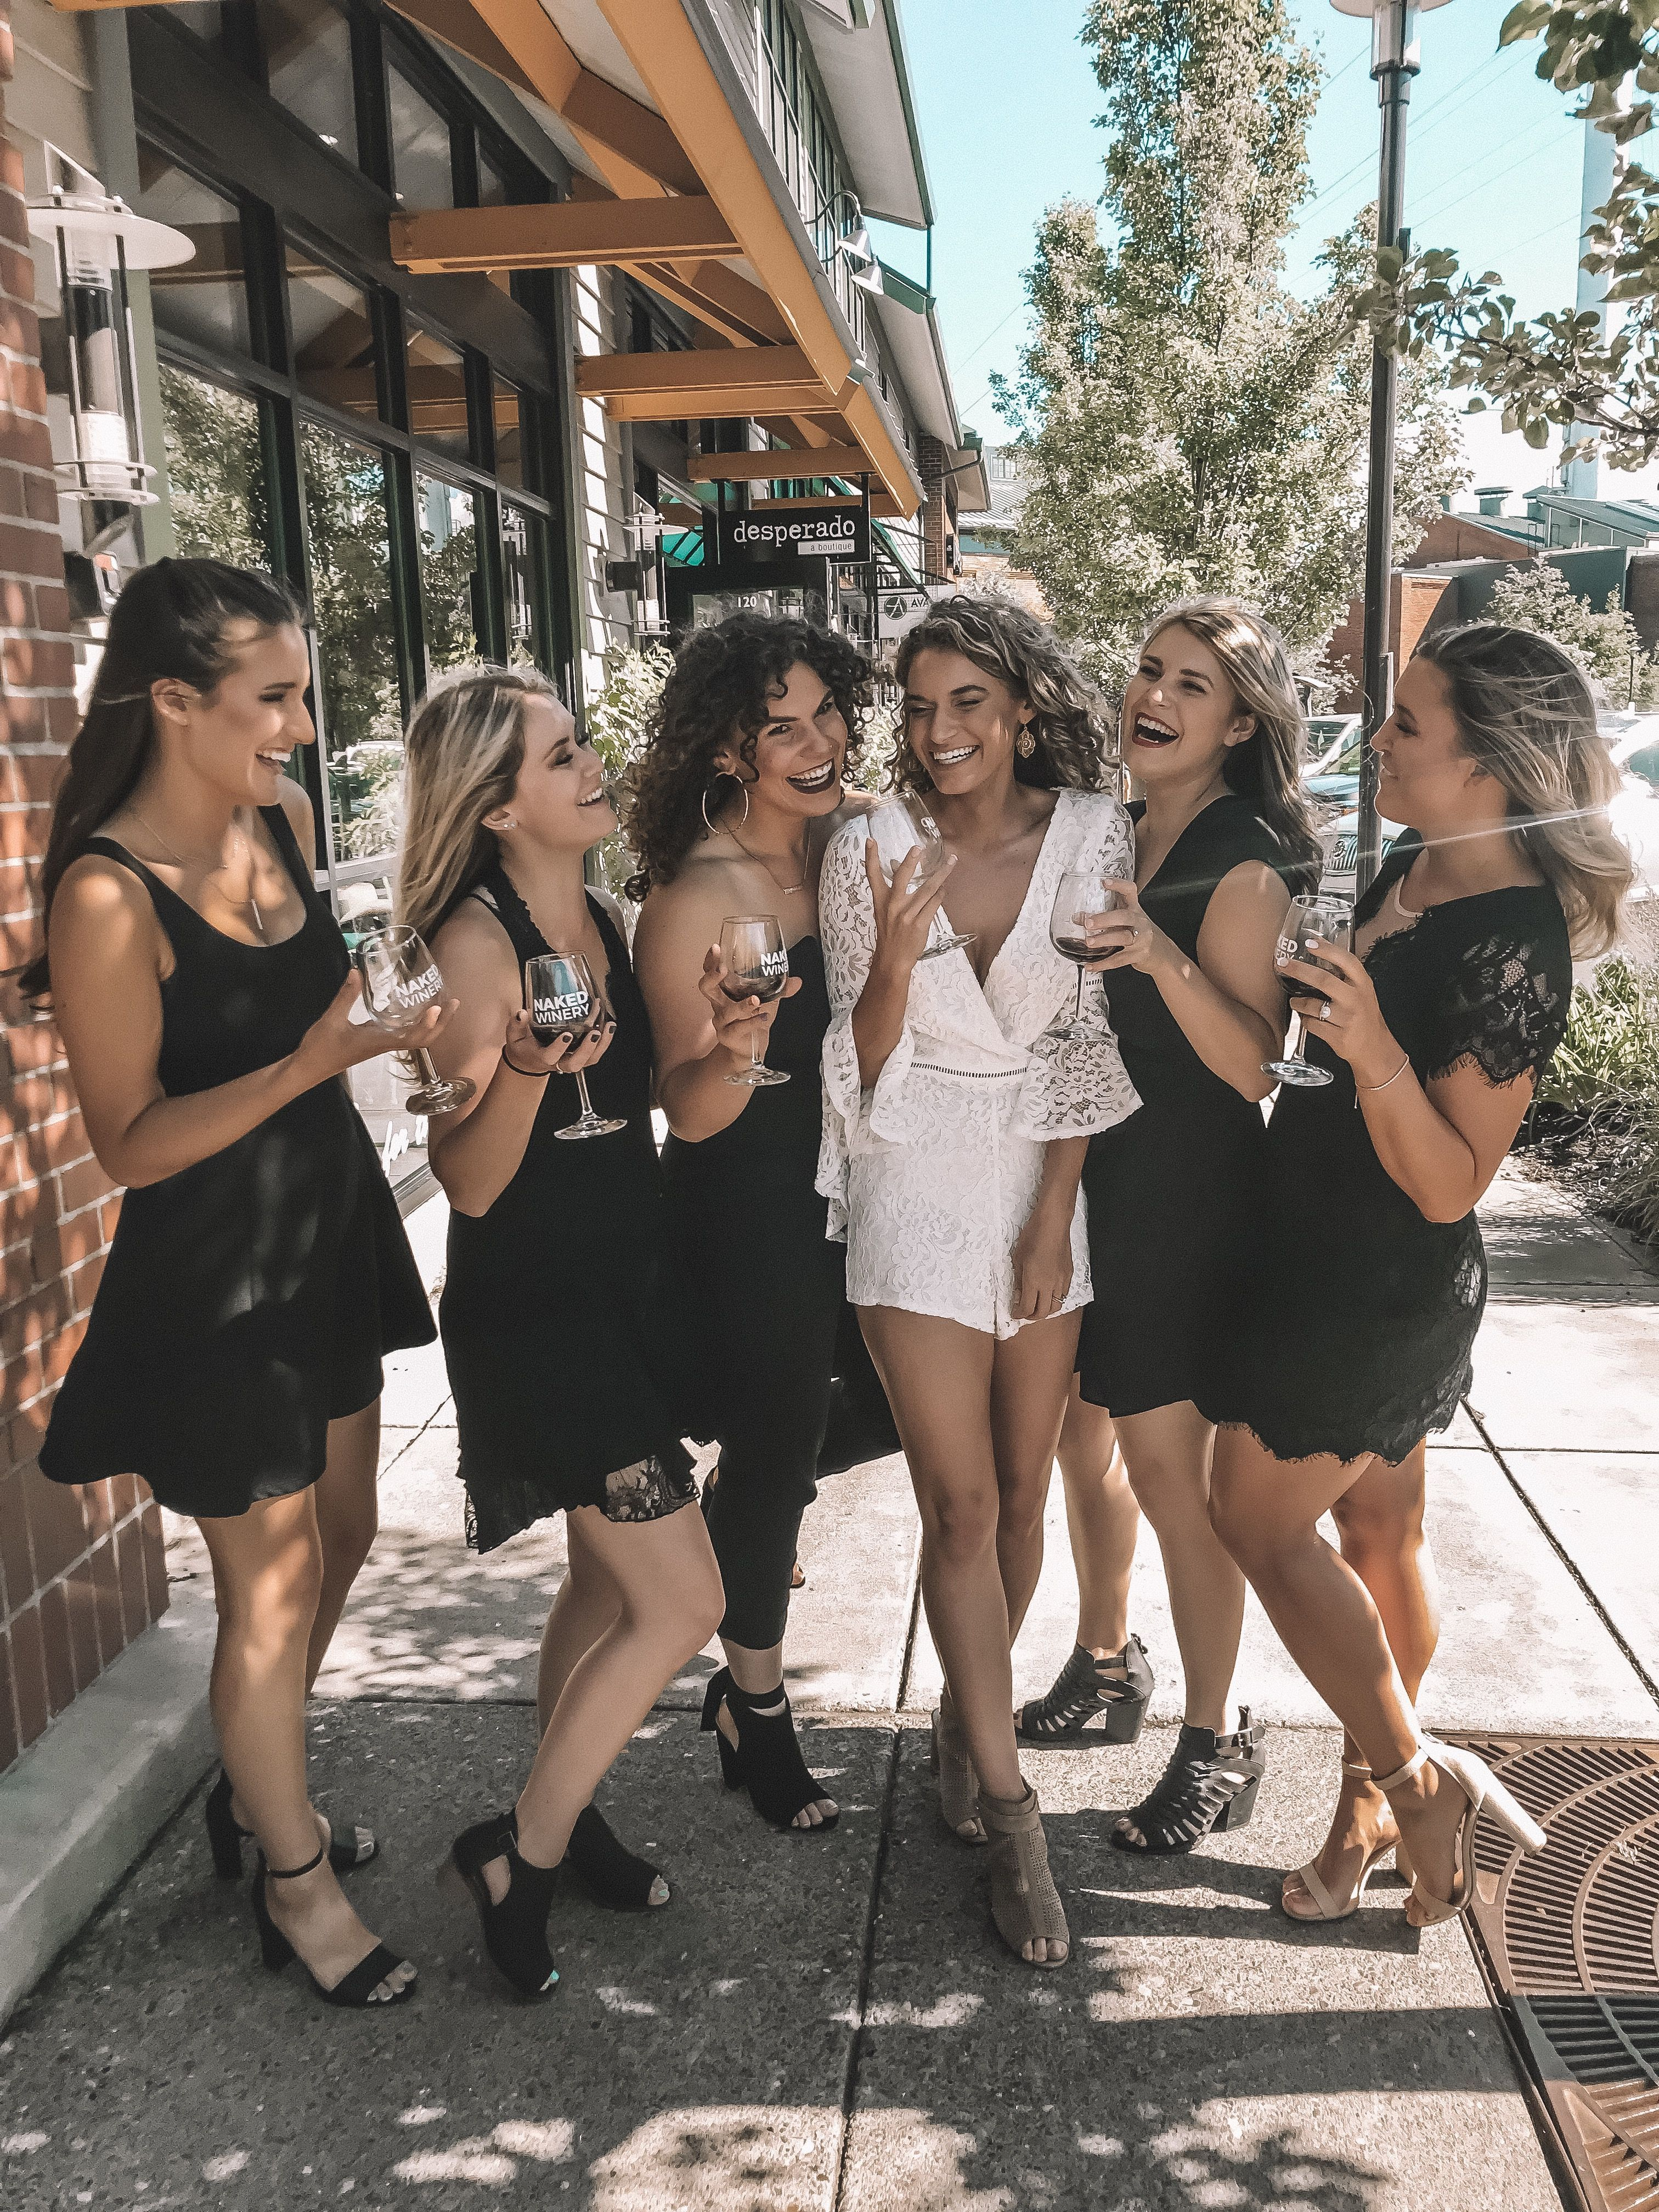 Wine tasting bachelorette party. Outfit inspiration for